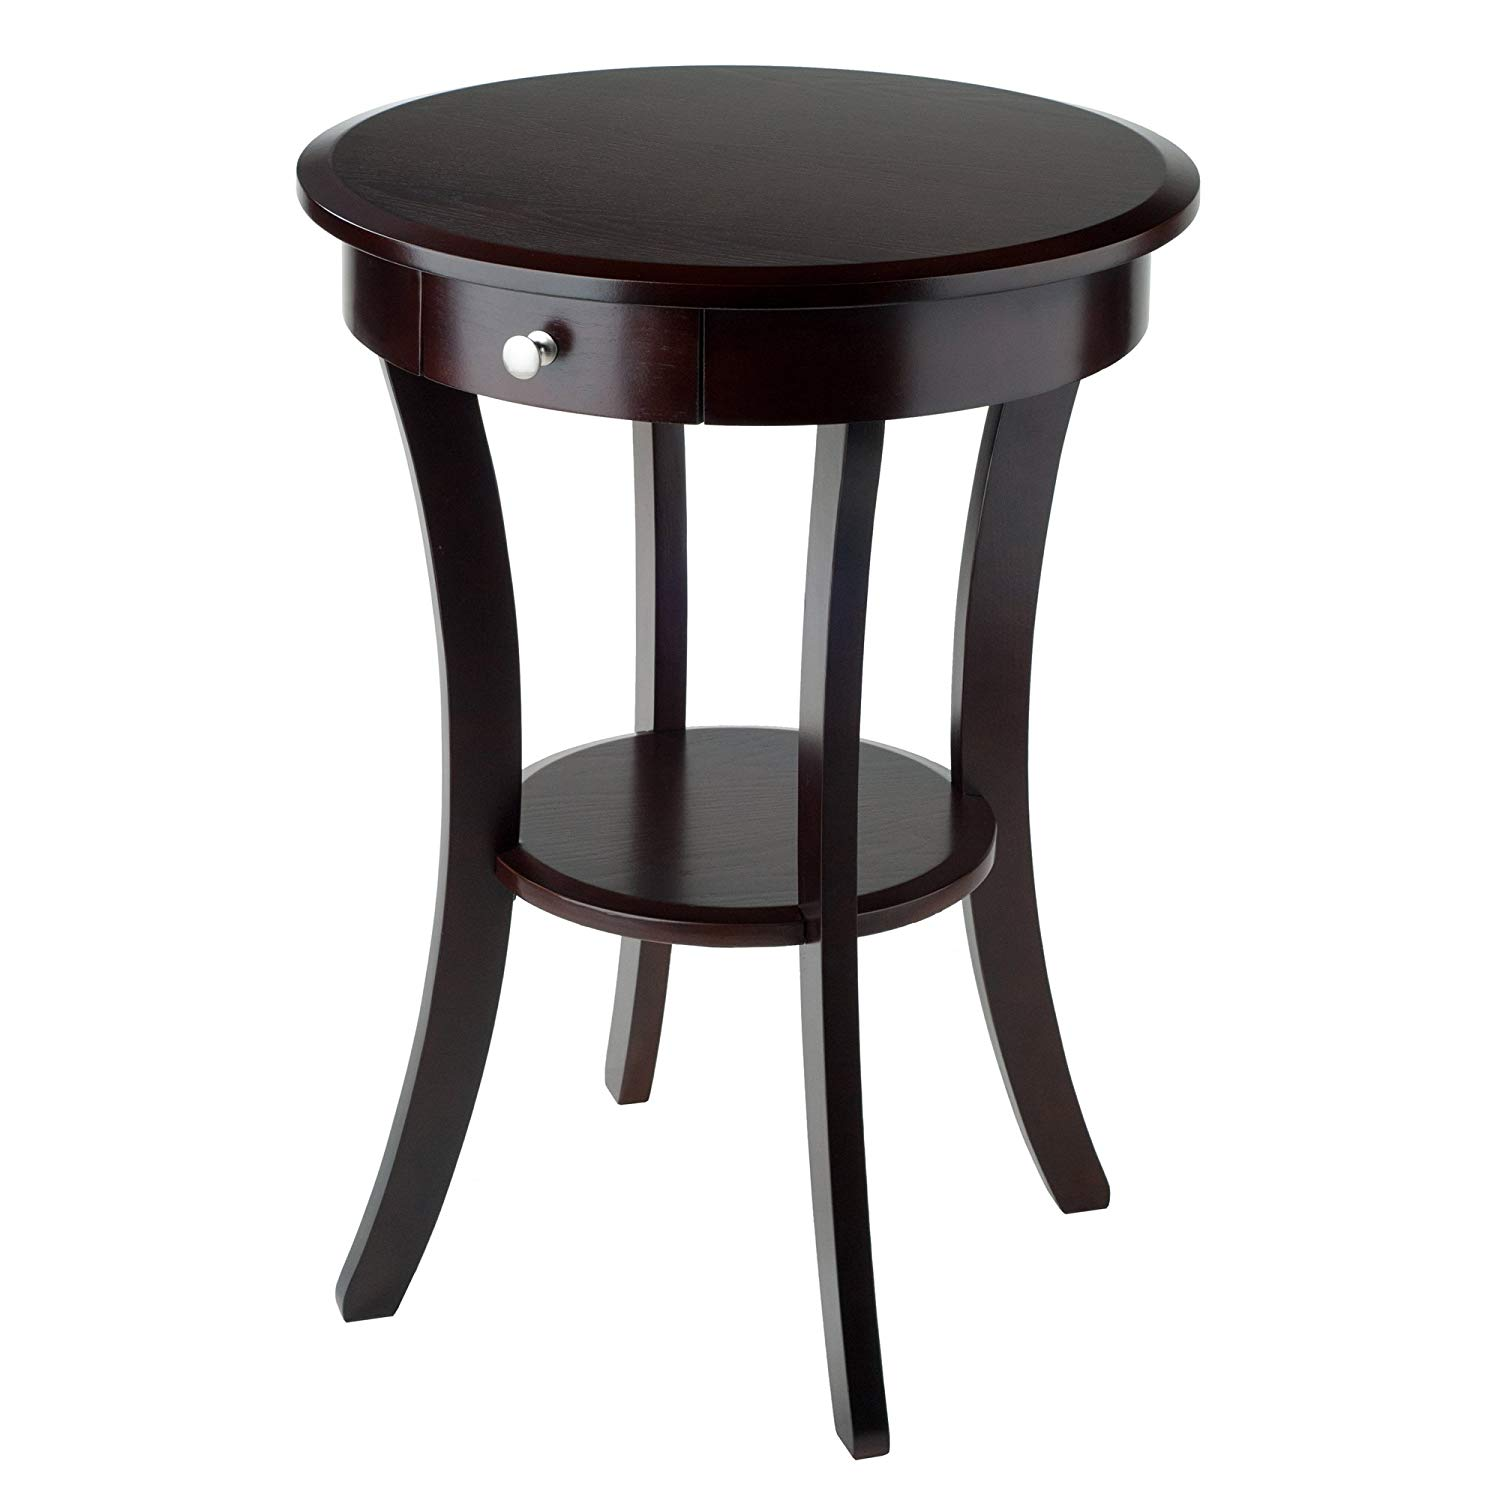 winsome wood sasha accent table cappuccino cassie with glass top finish kitchen dining square end drawer patio and umbrella inch tablecloth linen cloth home furnishings edmonton